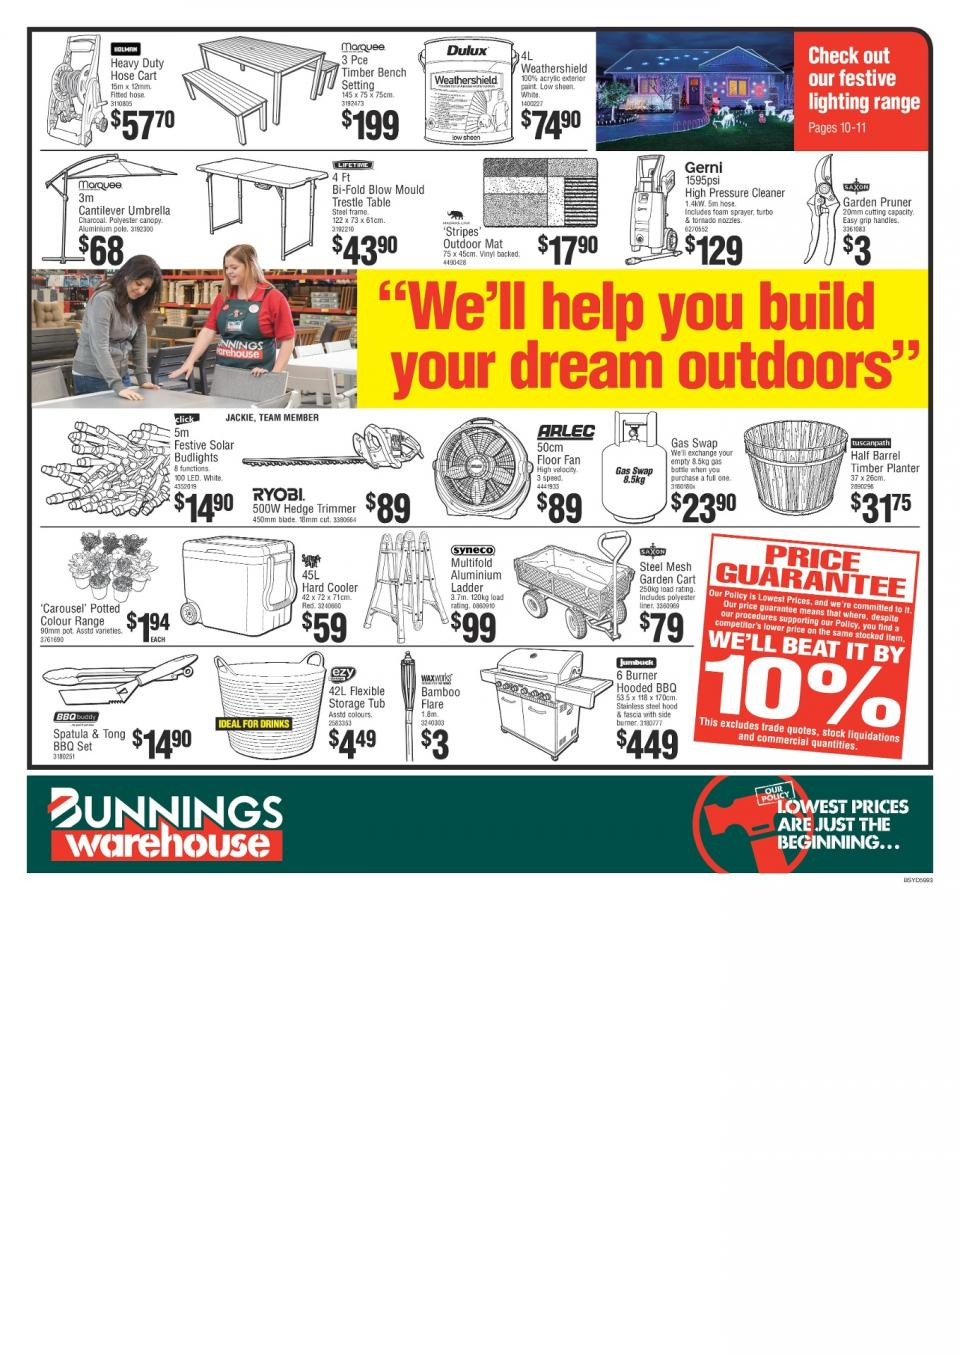 bunnings catalogue 8 november 2017